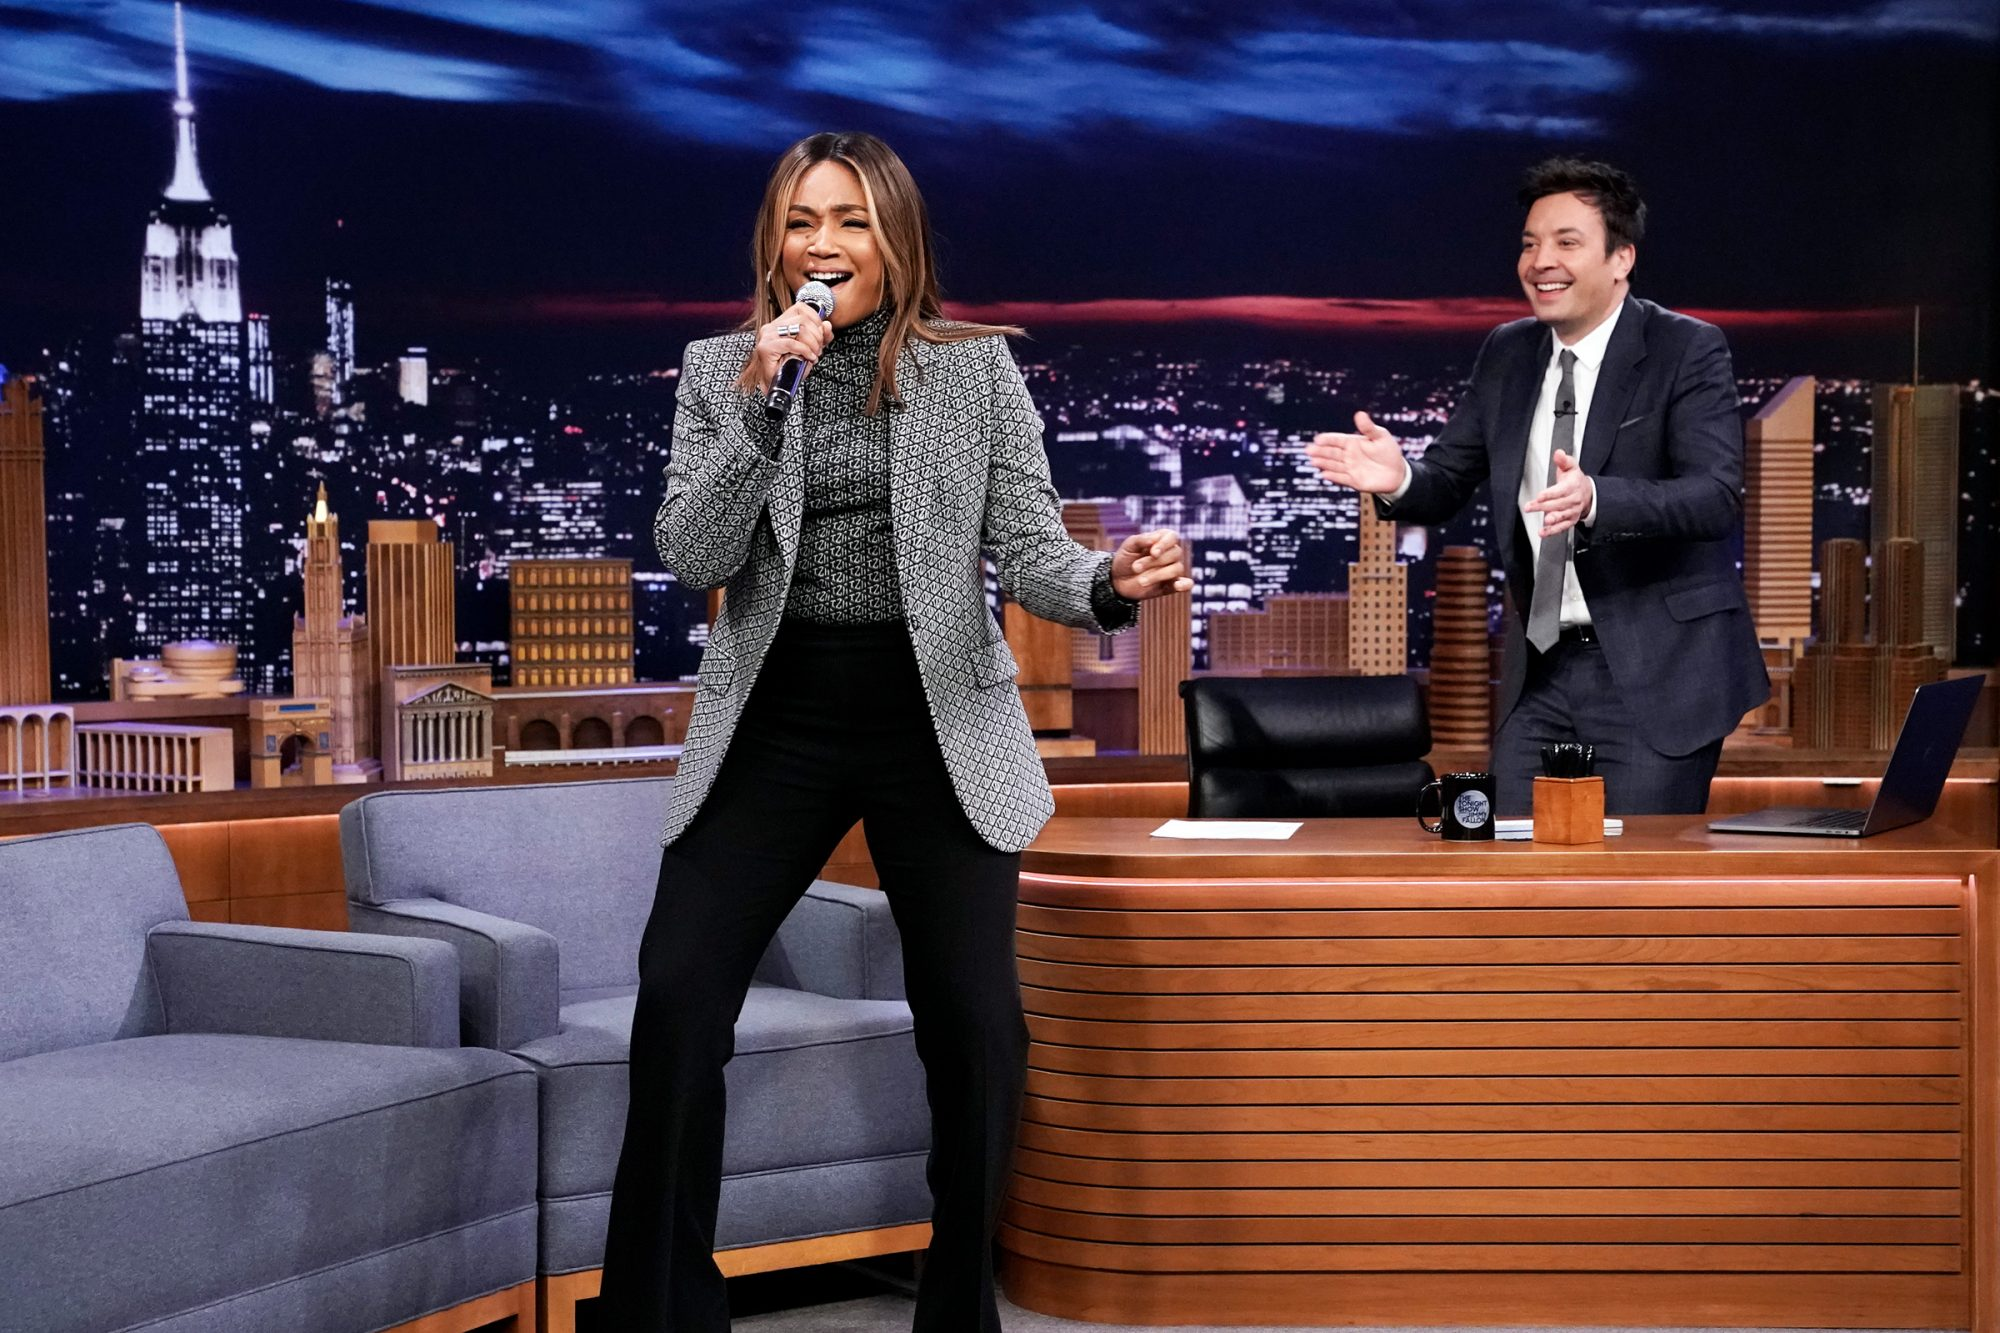 Tiffany Haddish during an interview with host Jimmy Fallon on December 1, 2019